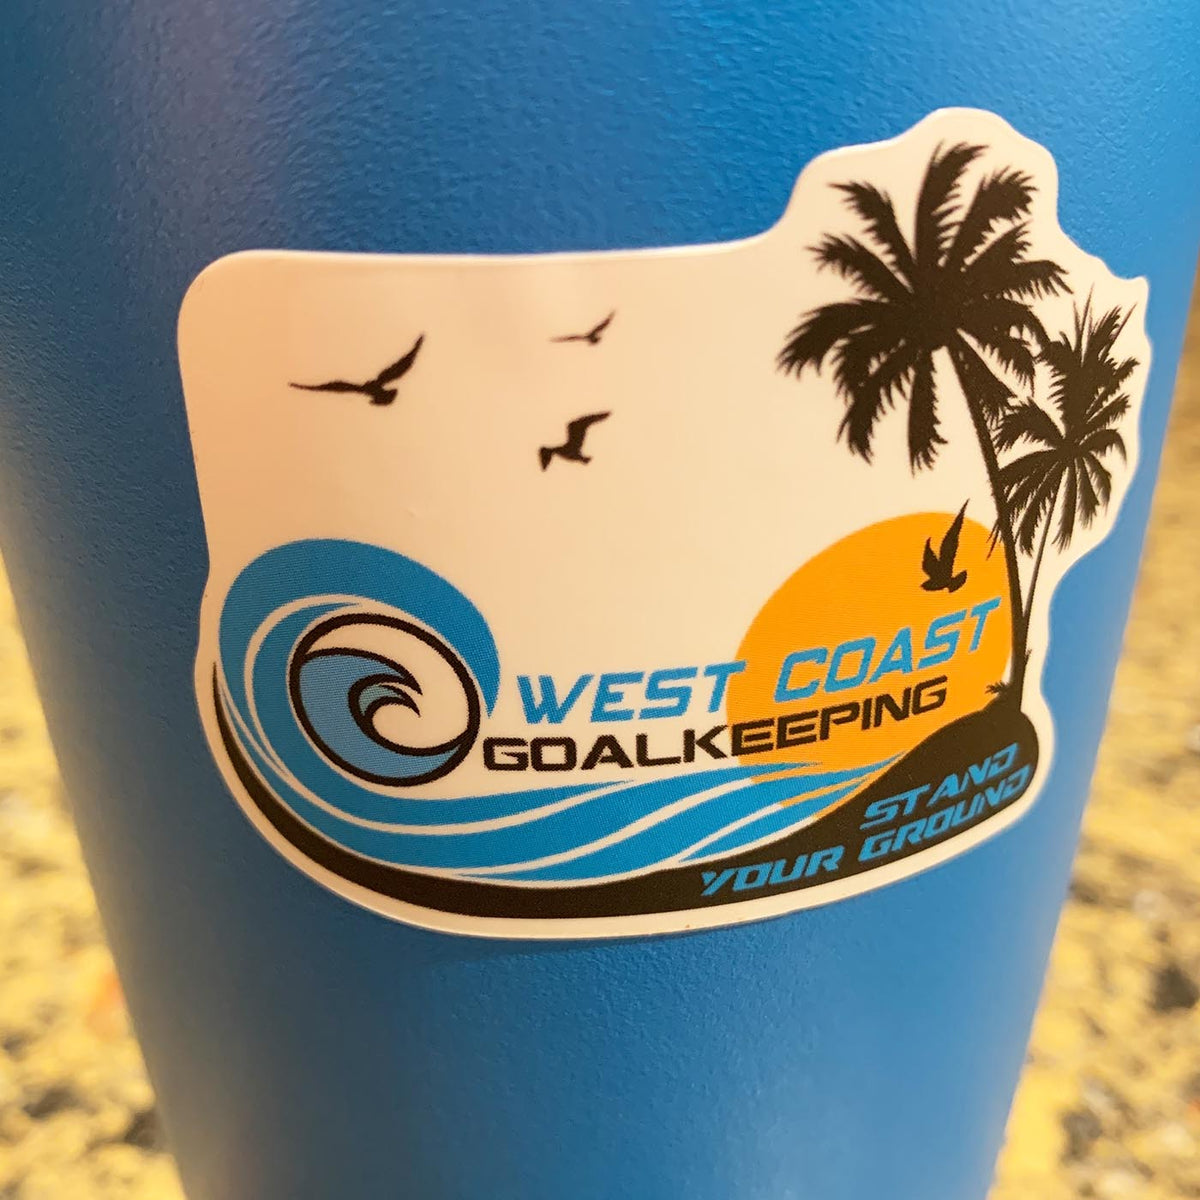 Sticker Sheet - West Coast Goalkeeping